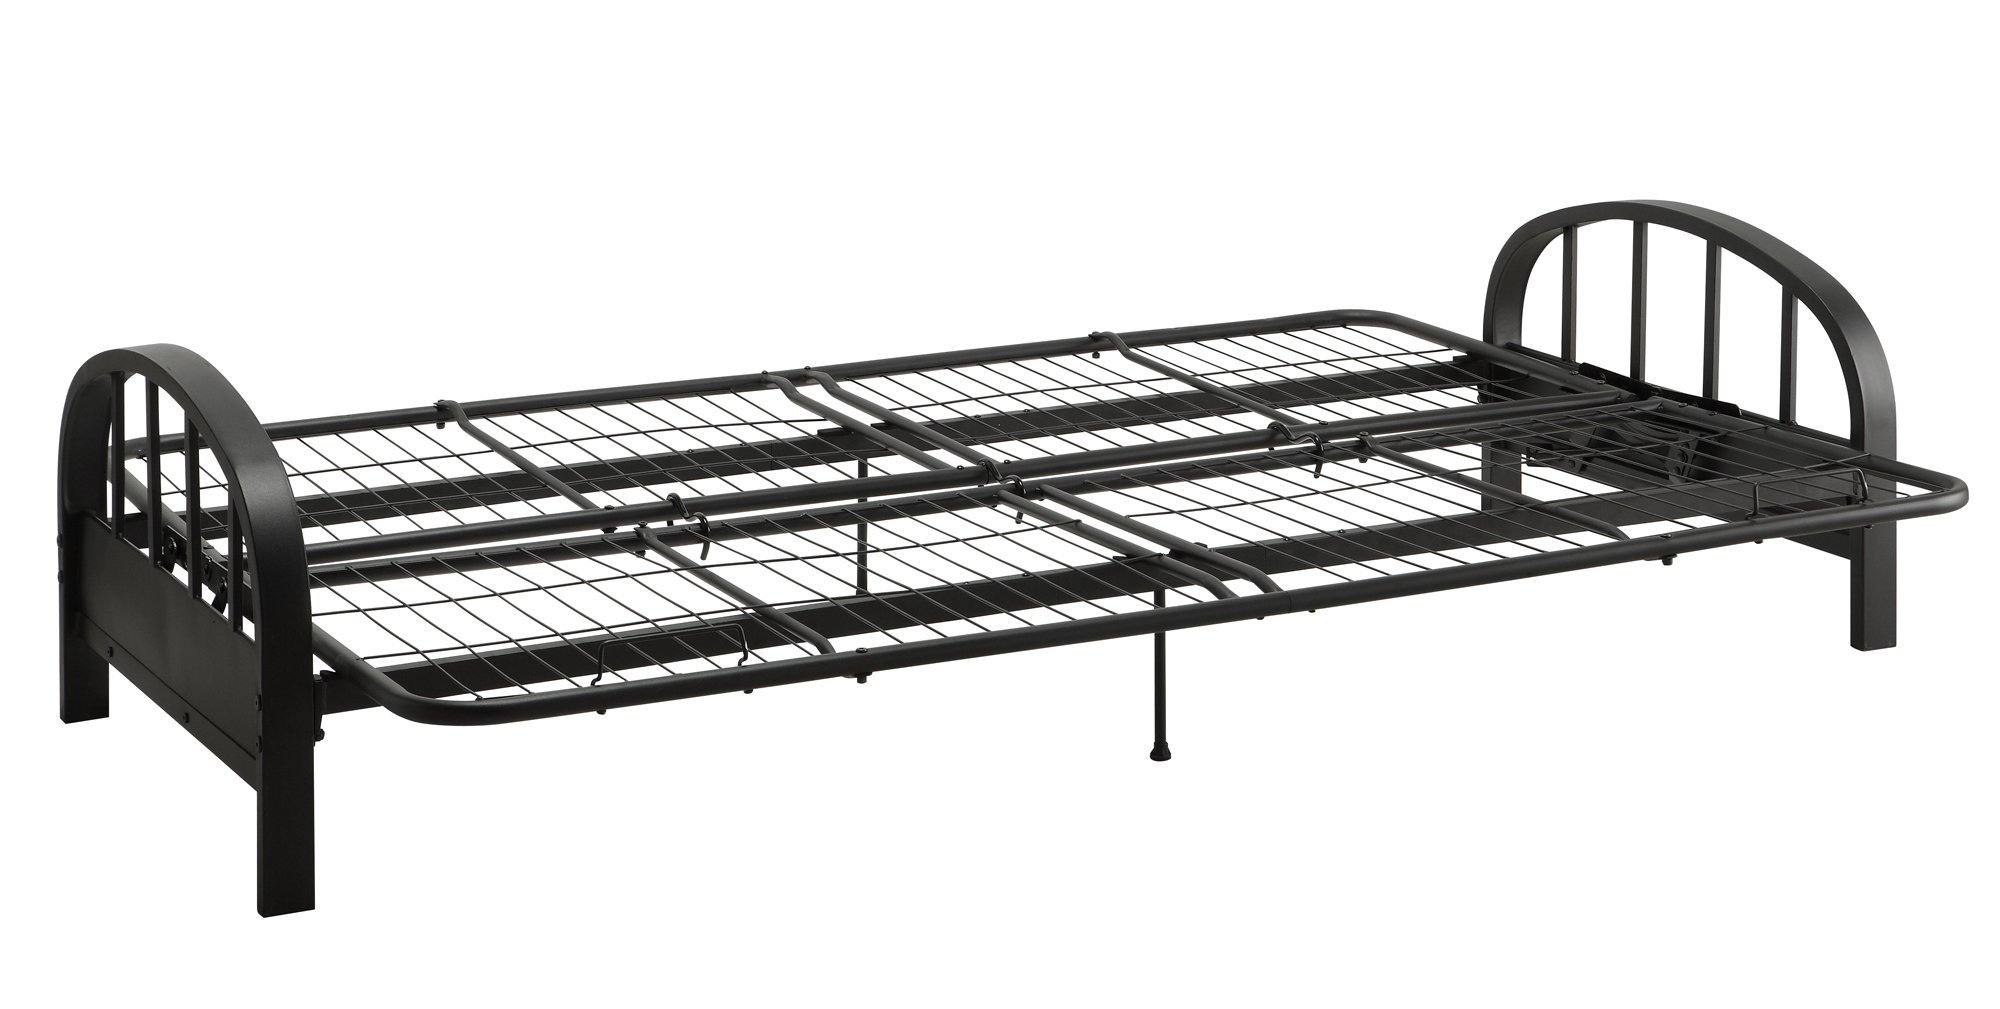 DHP Aiden Futon Metal Frame, Converts Easily to a Full- Size Bed, Black by DHP (Image #4)